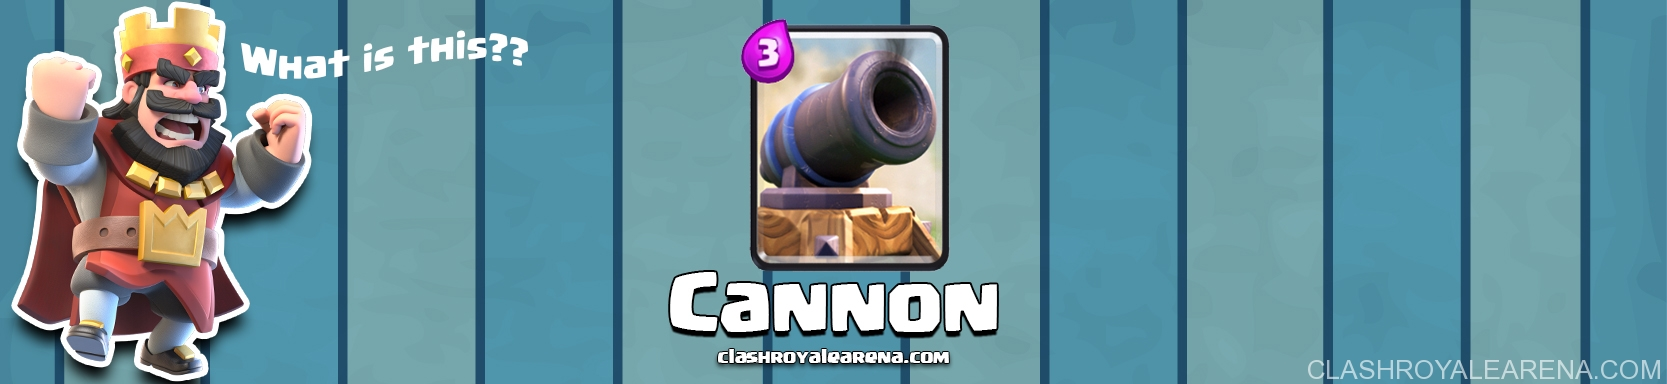 Clash Royale Cannon